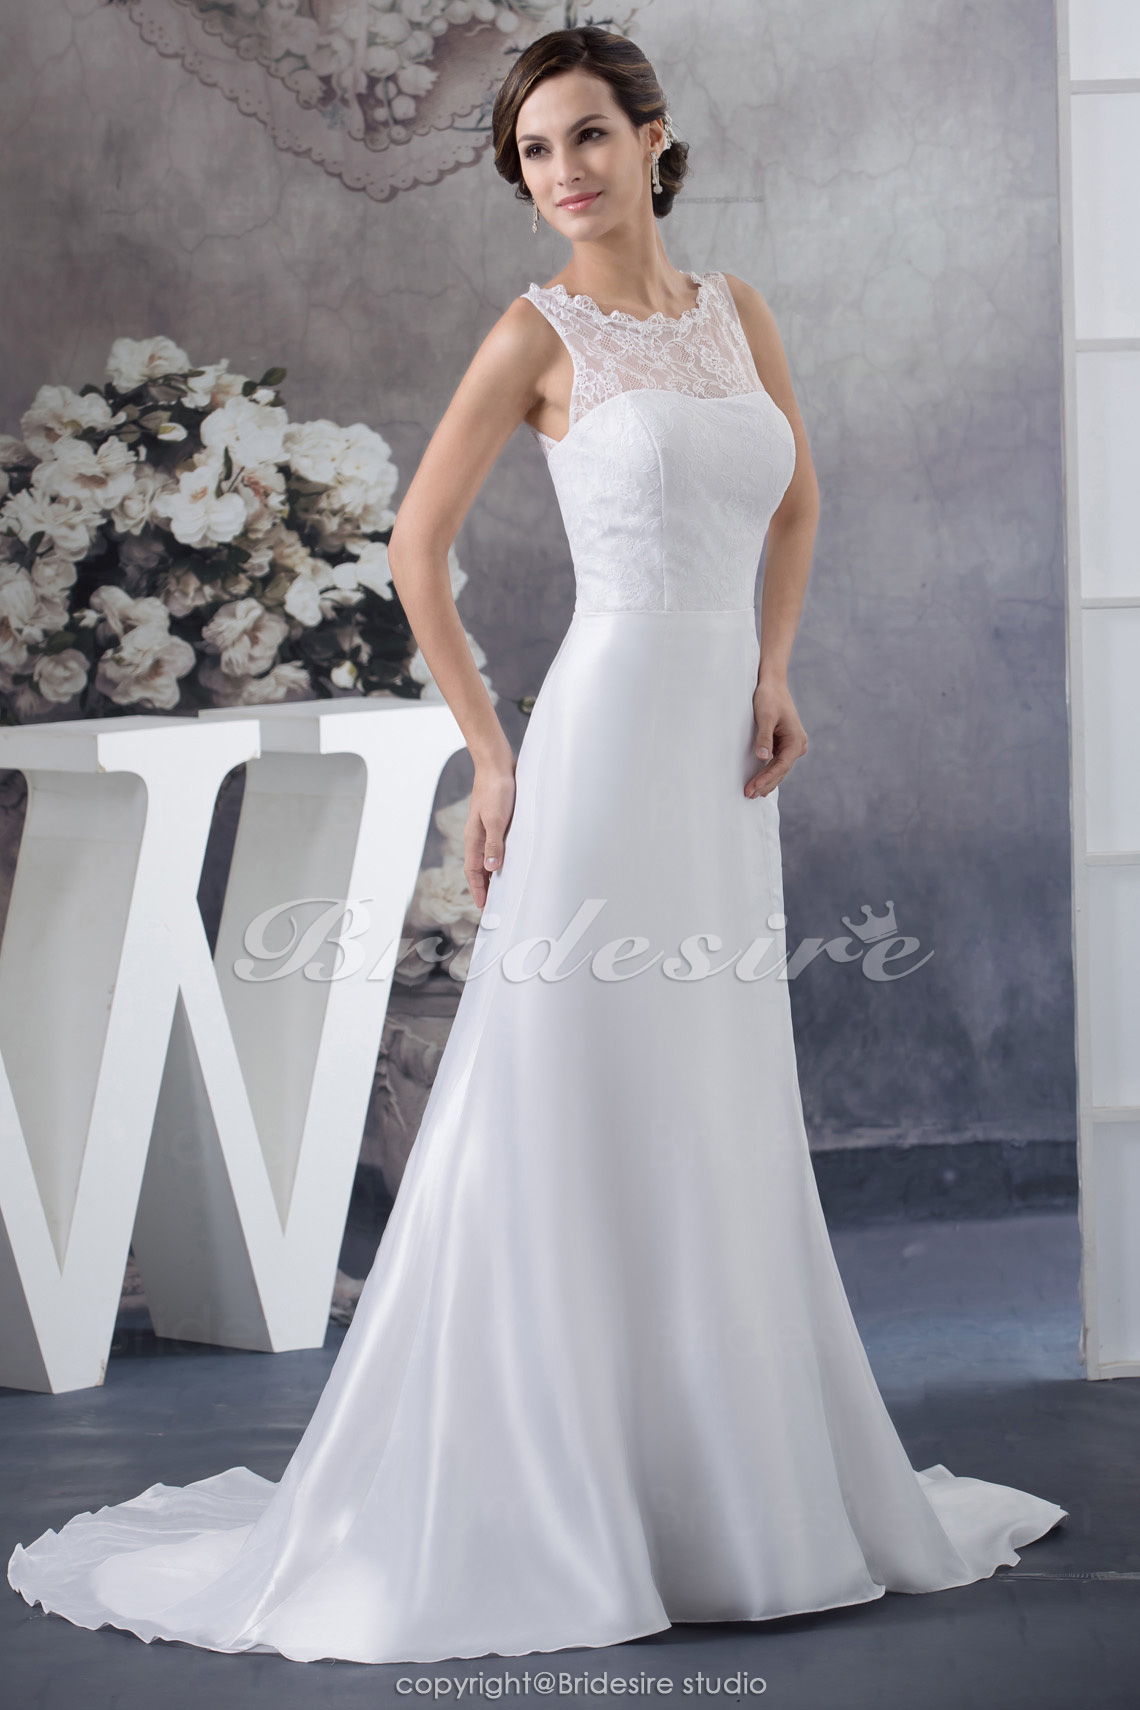 A-line Jewel Floor-length Sweep Train Sleeveless Satin Wedding Dress